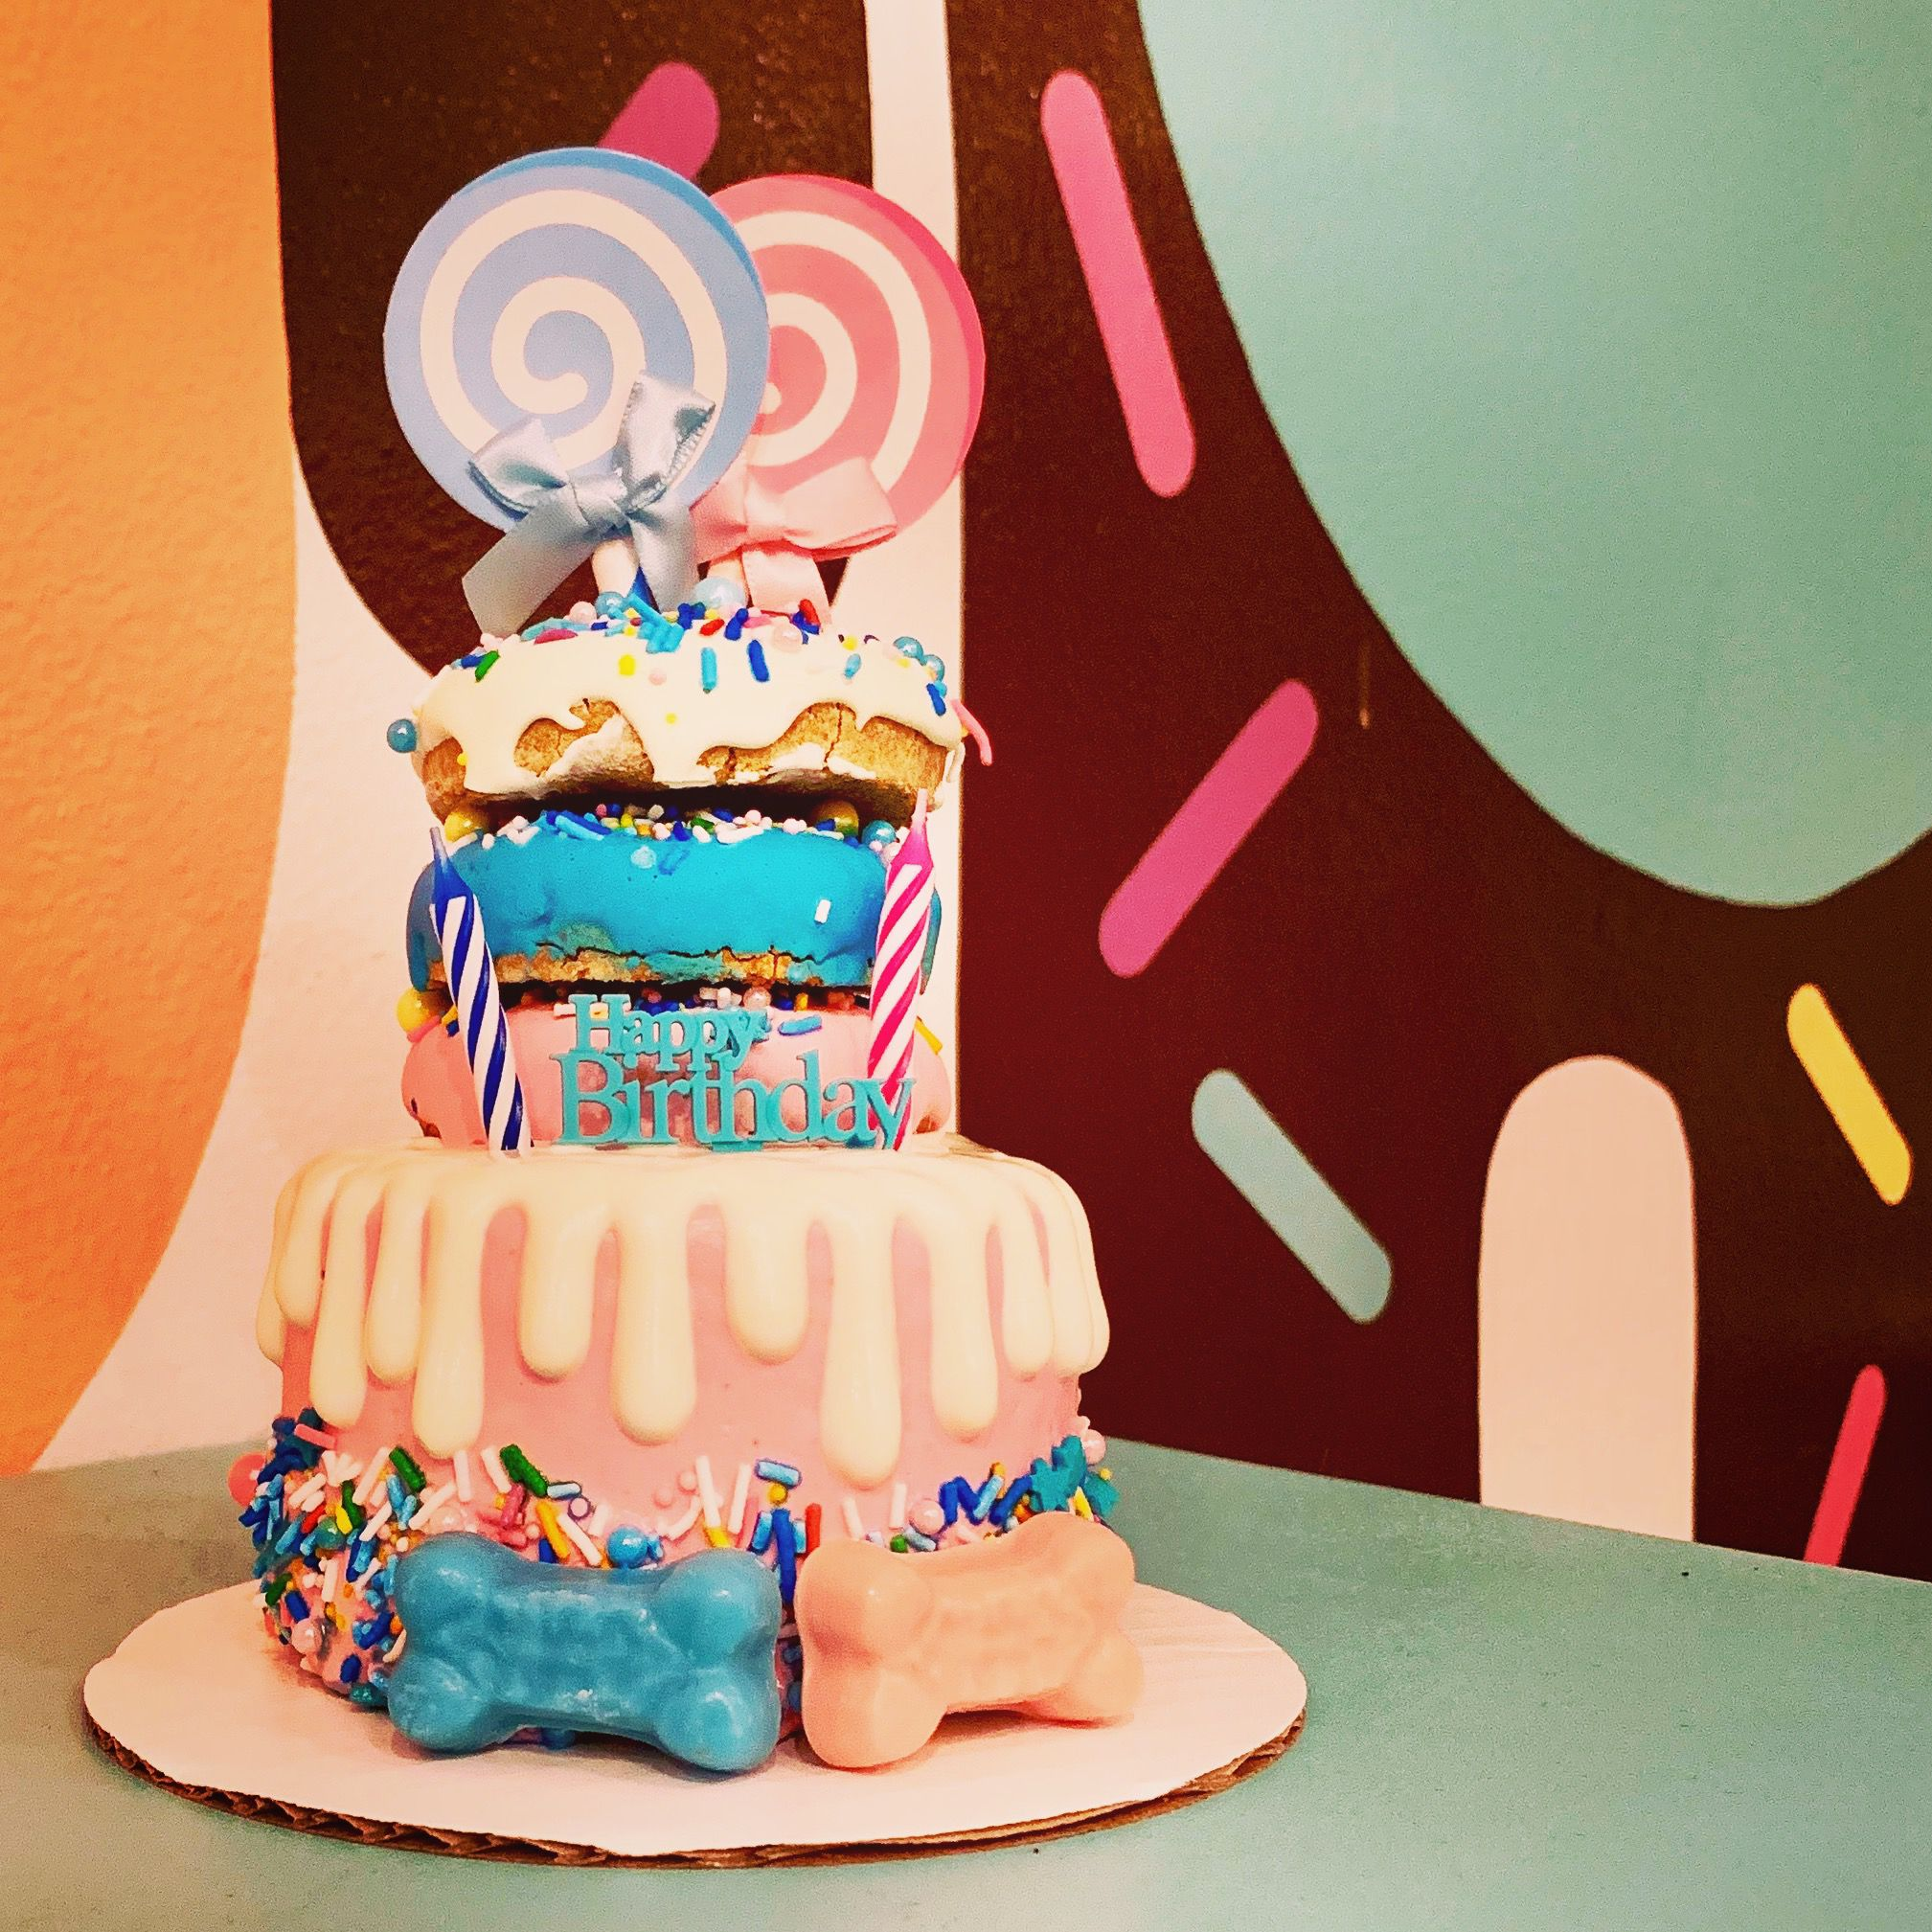 Dog Birthday Cake With Donuts By Bakery Bow Wow Beauty Shoppe San Diego CA